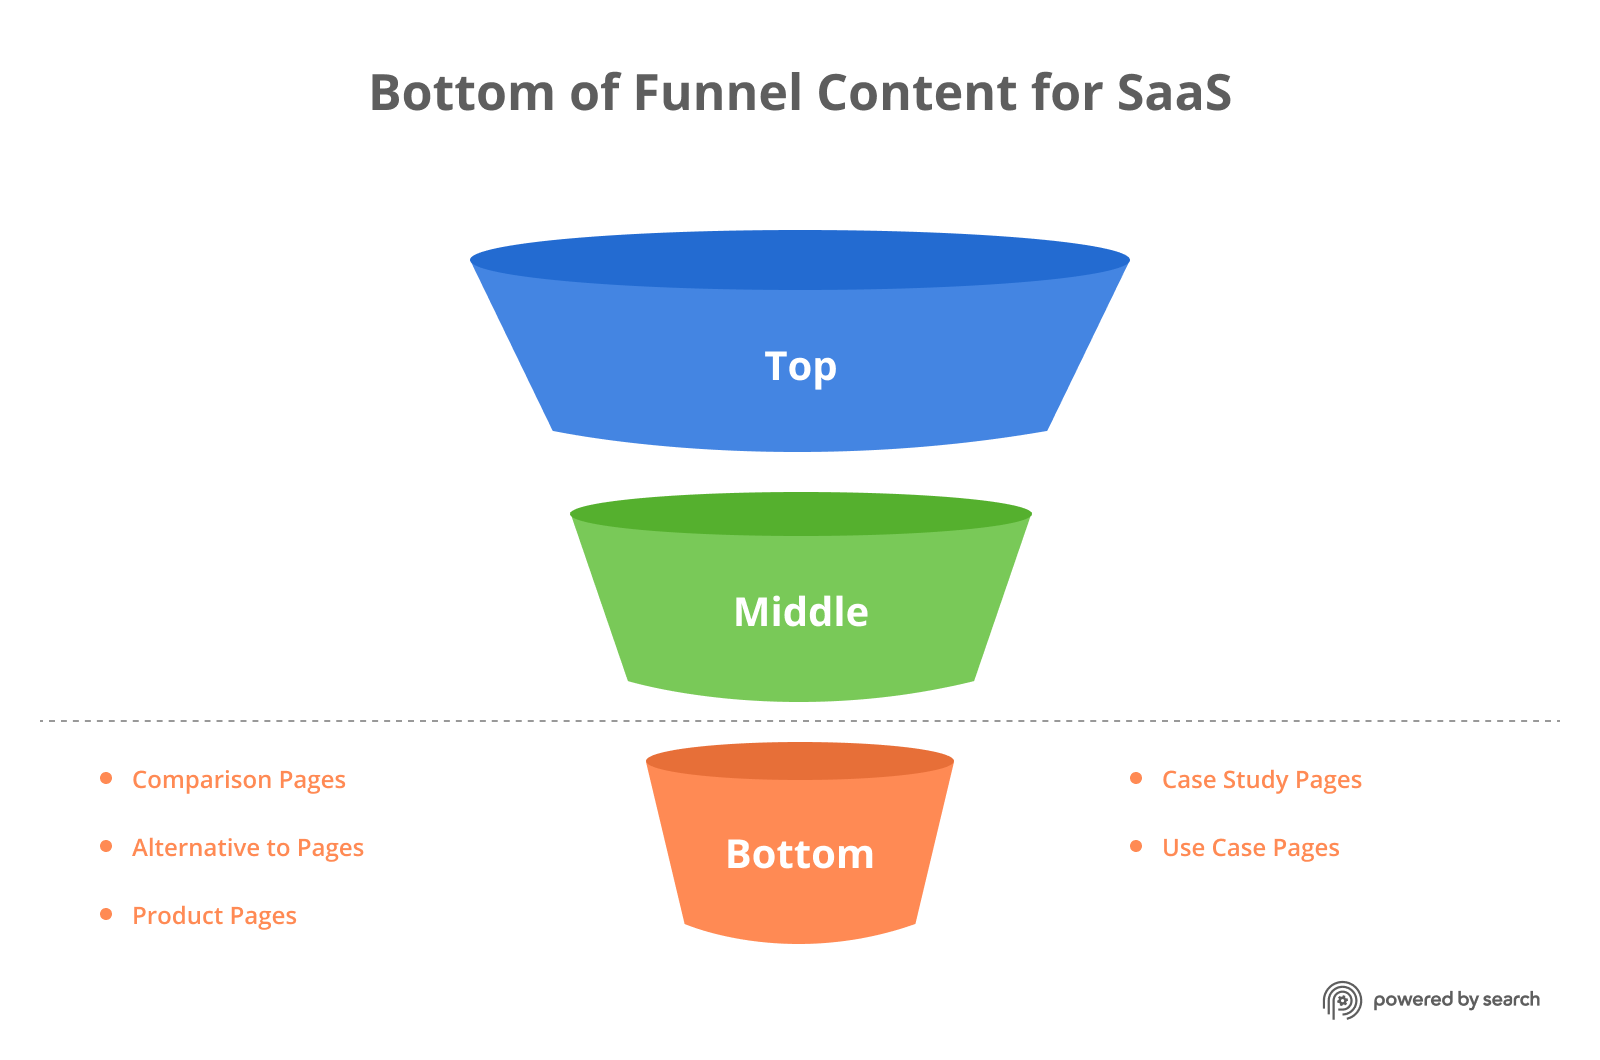 Bottom of the funnel content types for B2B SaaS